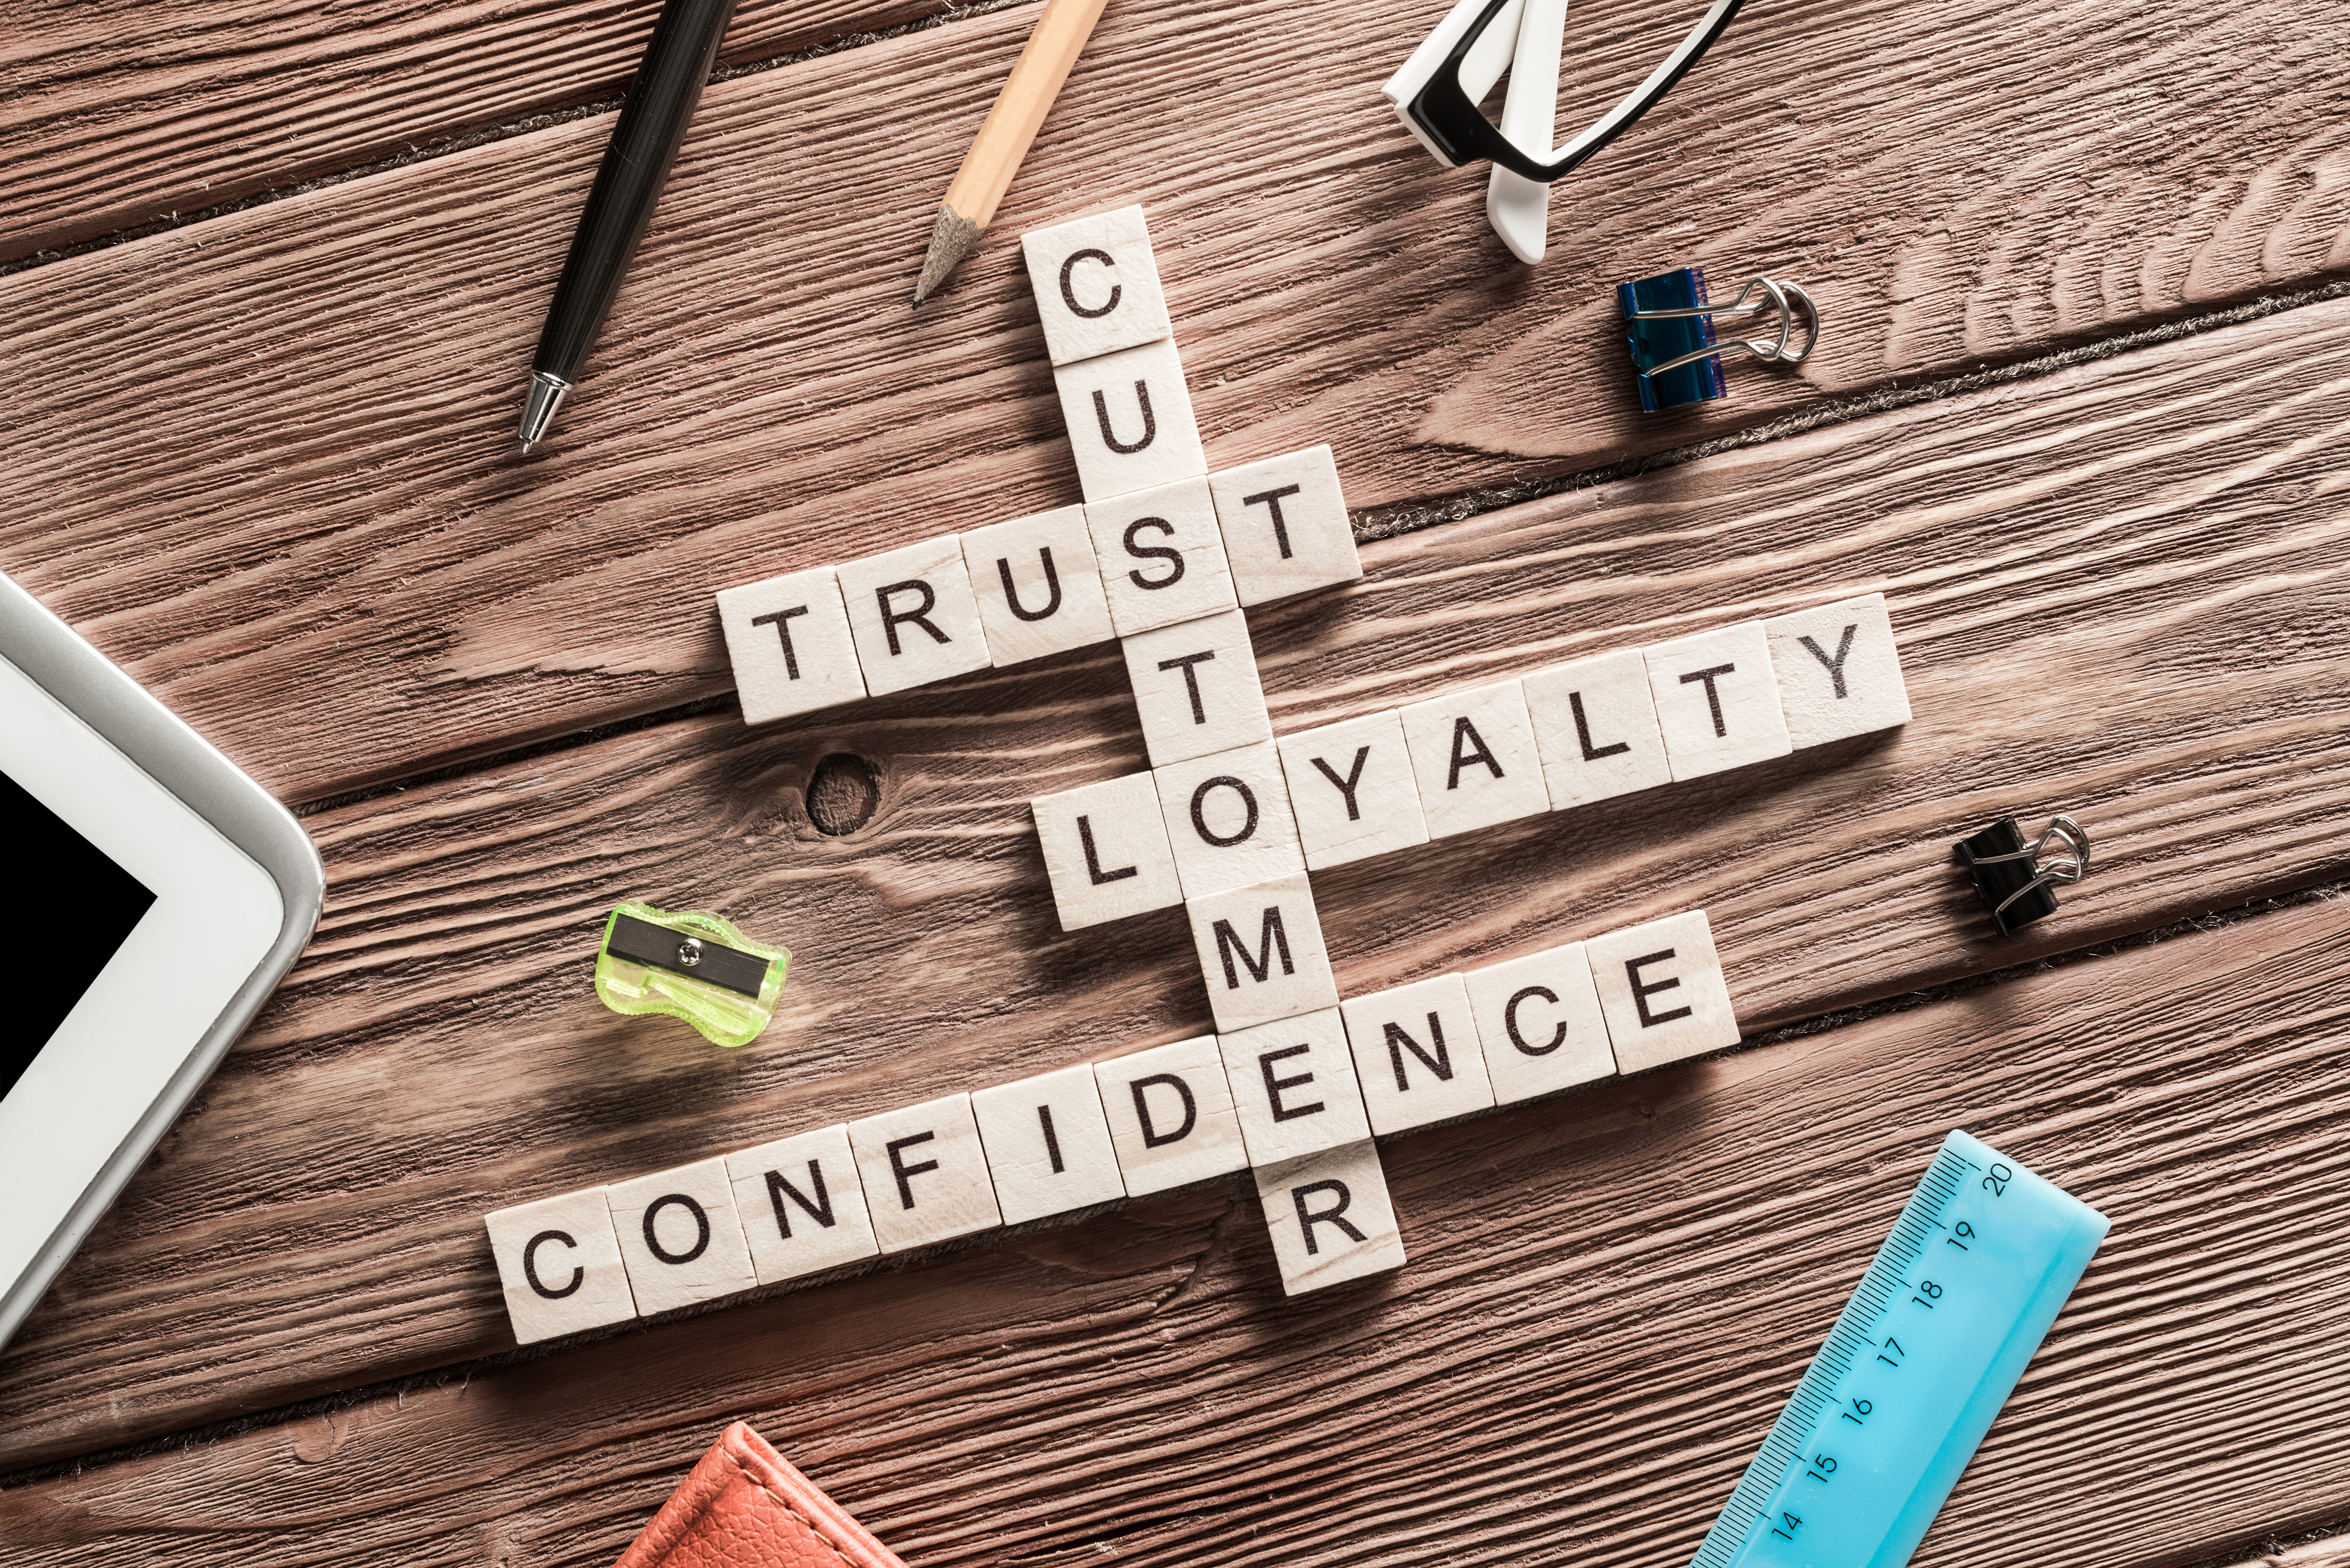 A step-by-step guide for building brand trust